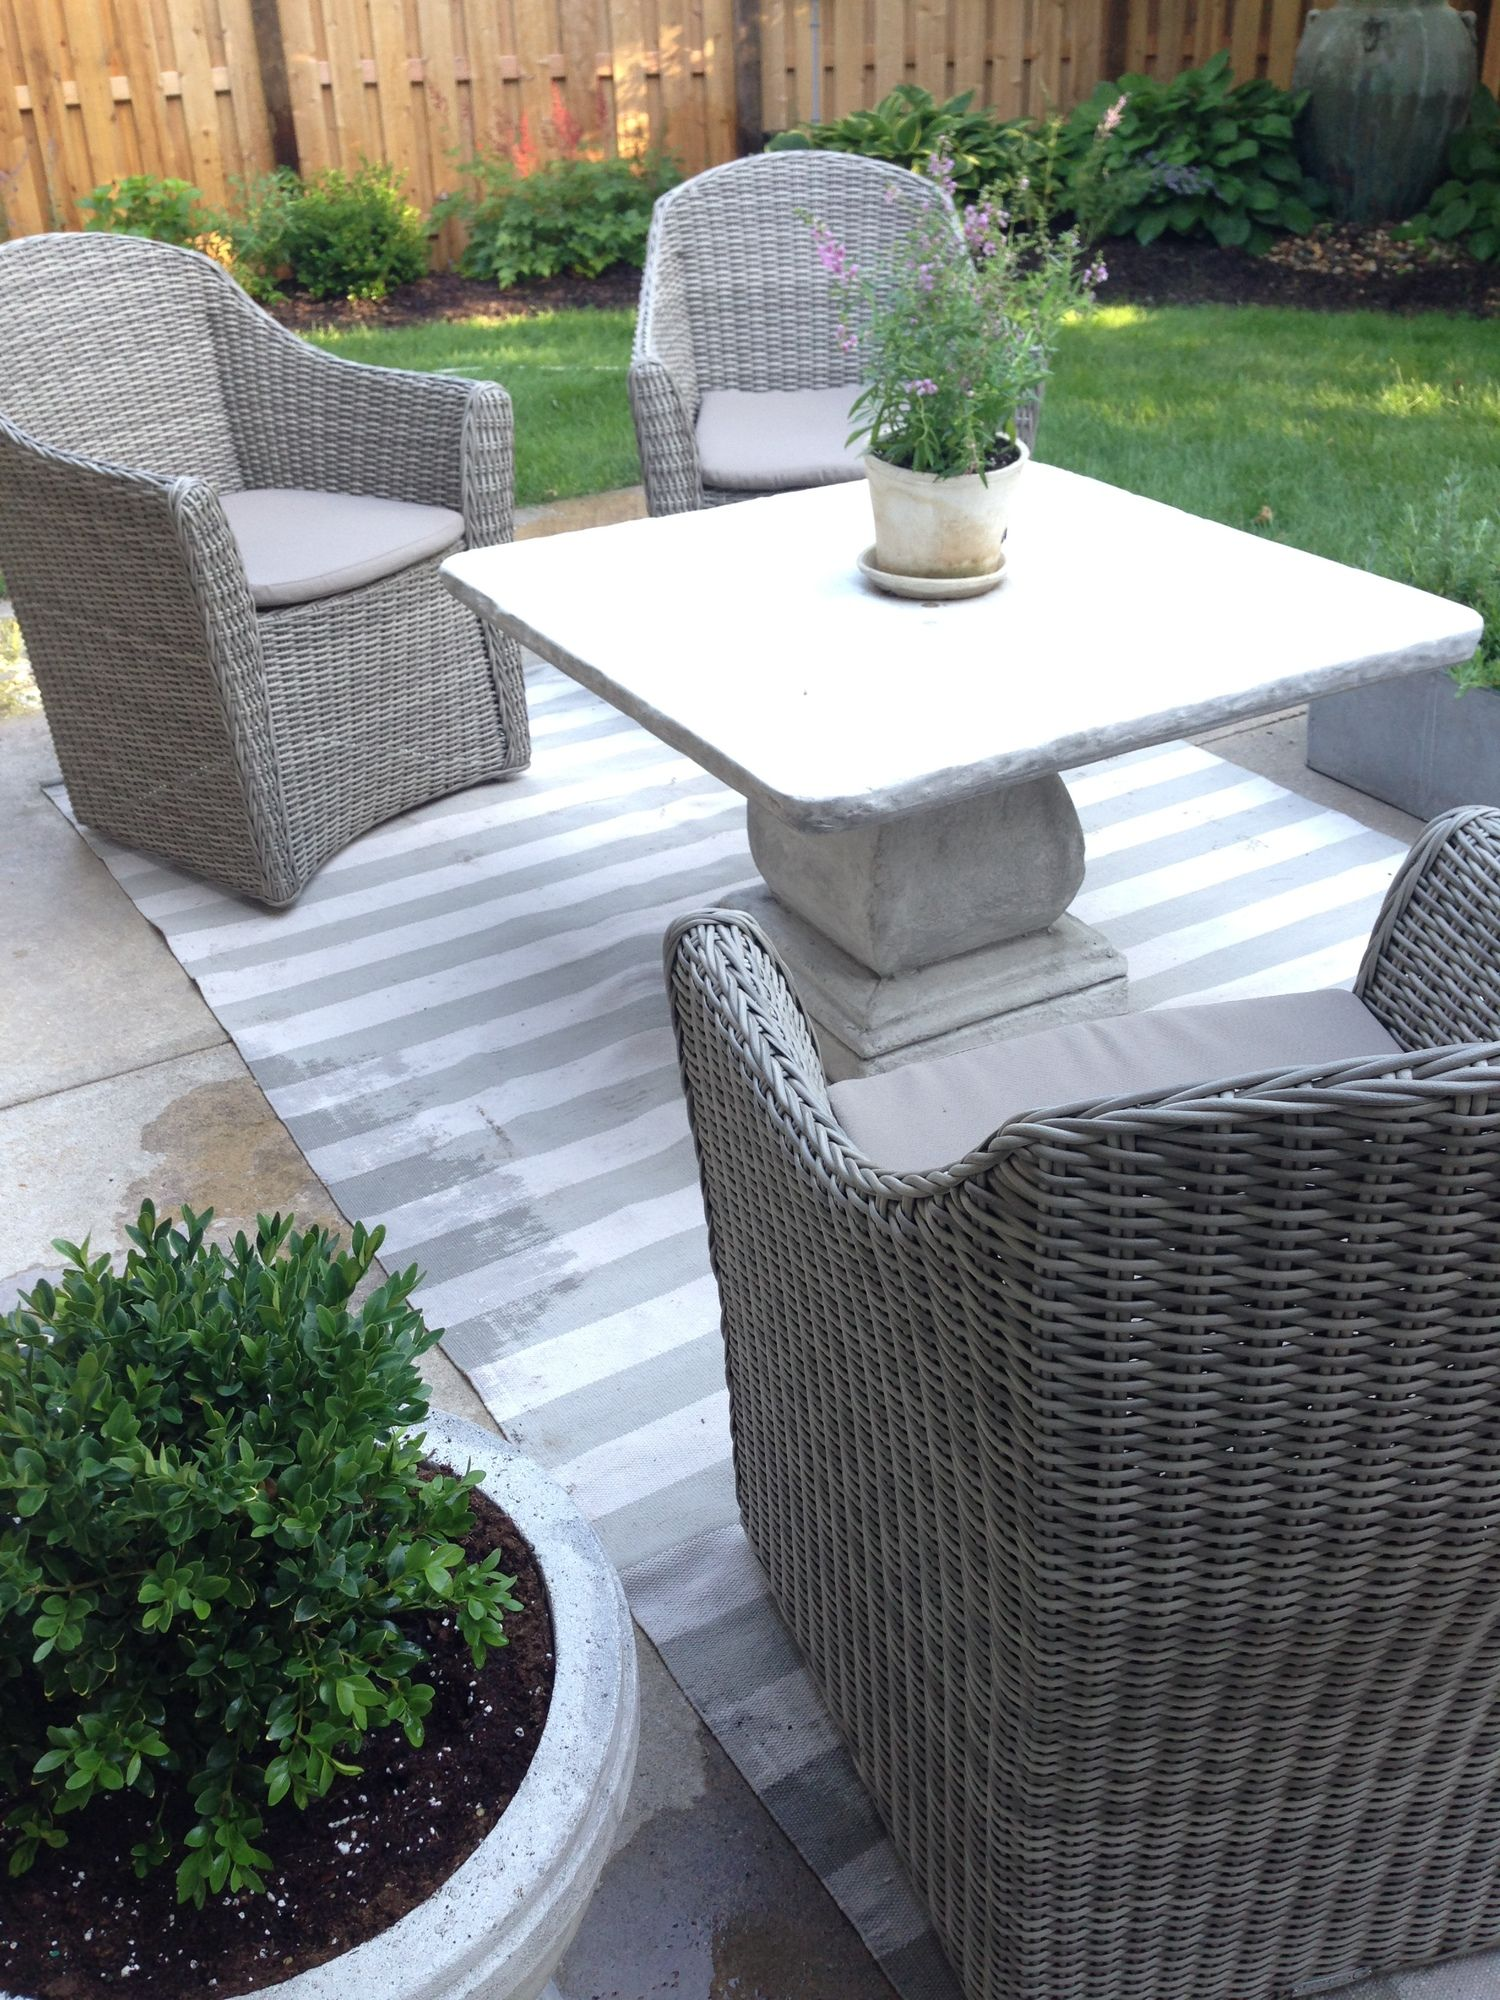 Styling By P C Outdoor Furniture Sets Backyard Outdoor Ottoman